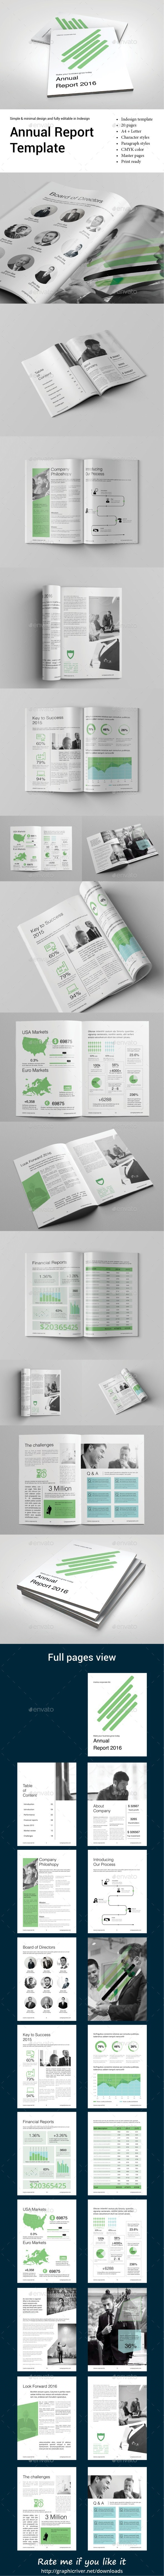 Annual Report Template - Brochures Print Templates